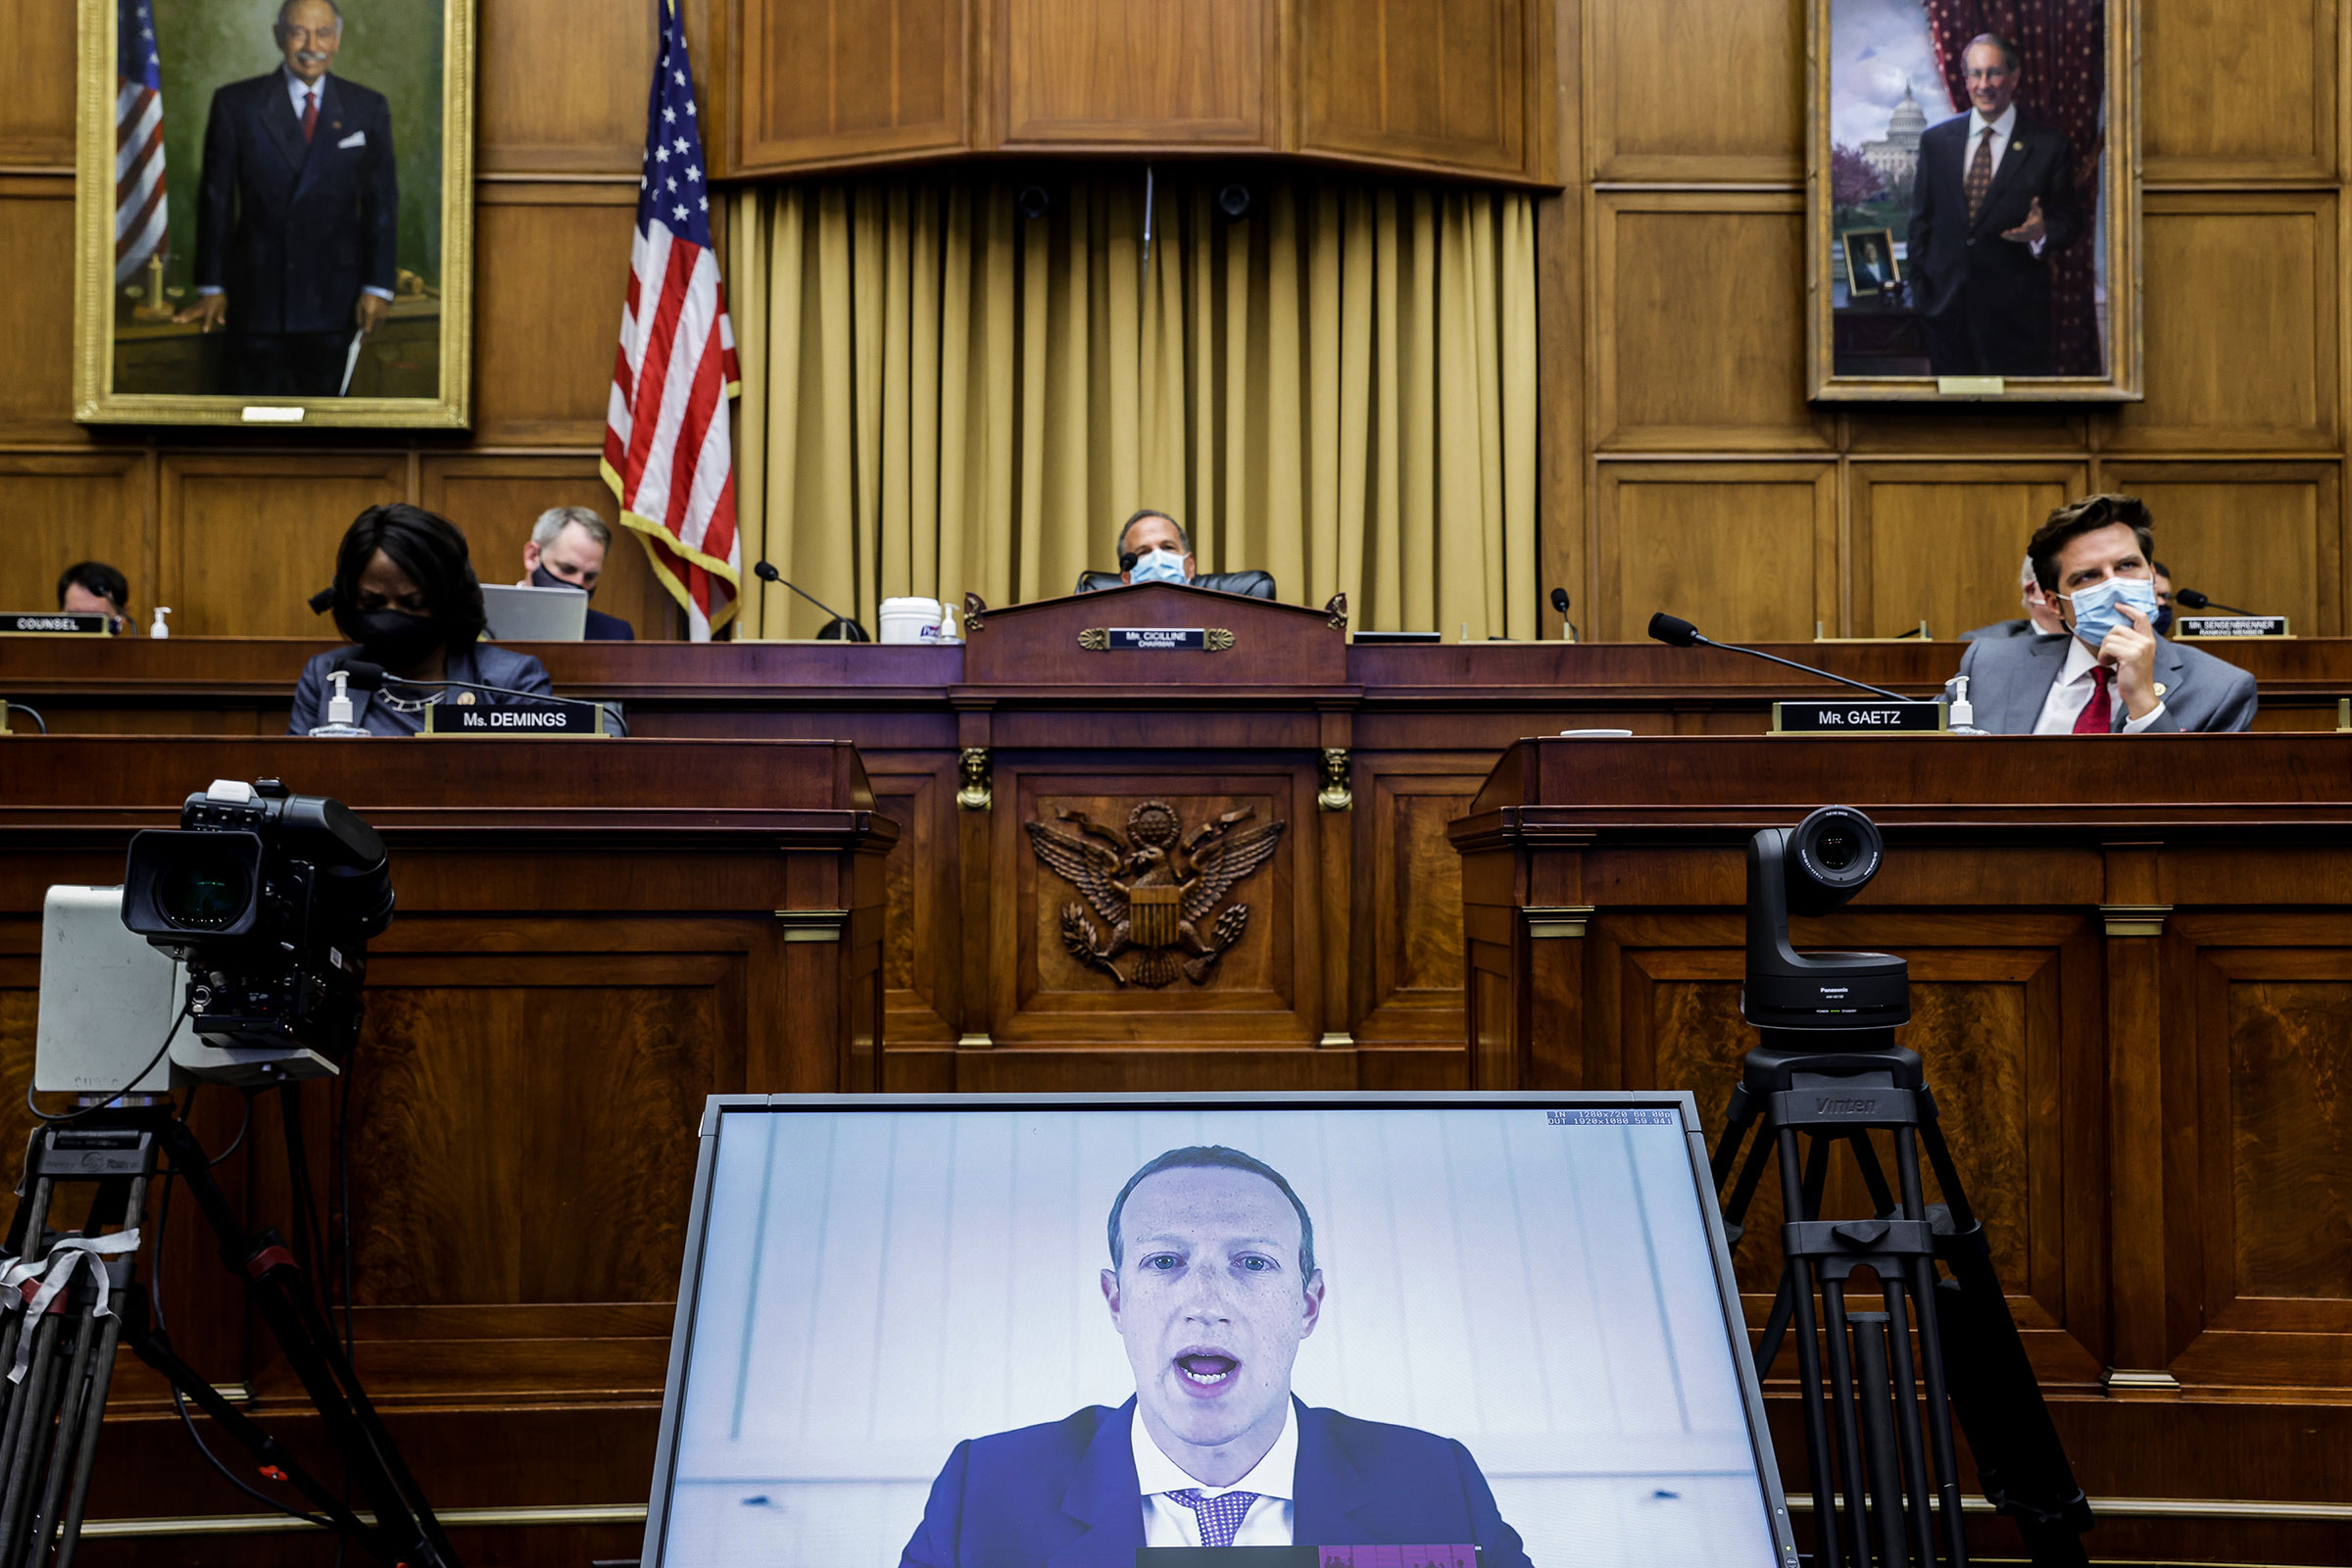 Facebook CEO Mark Zuckerberg speaks via video conference during the House Judiciary Subcommittee on Antitrust on Capitol Hill in Washington on July 29, 2020.